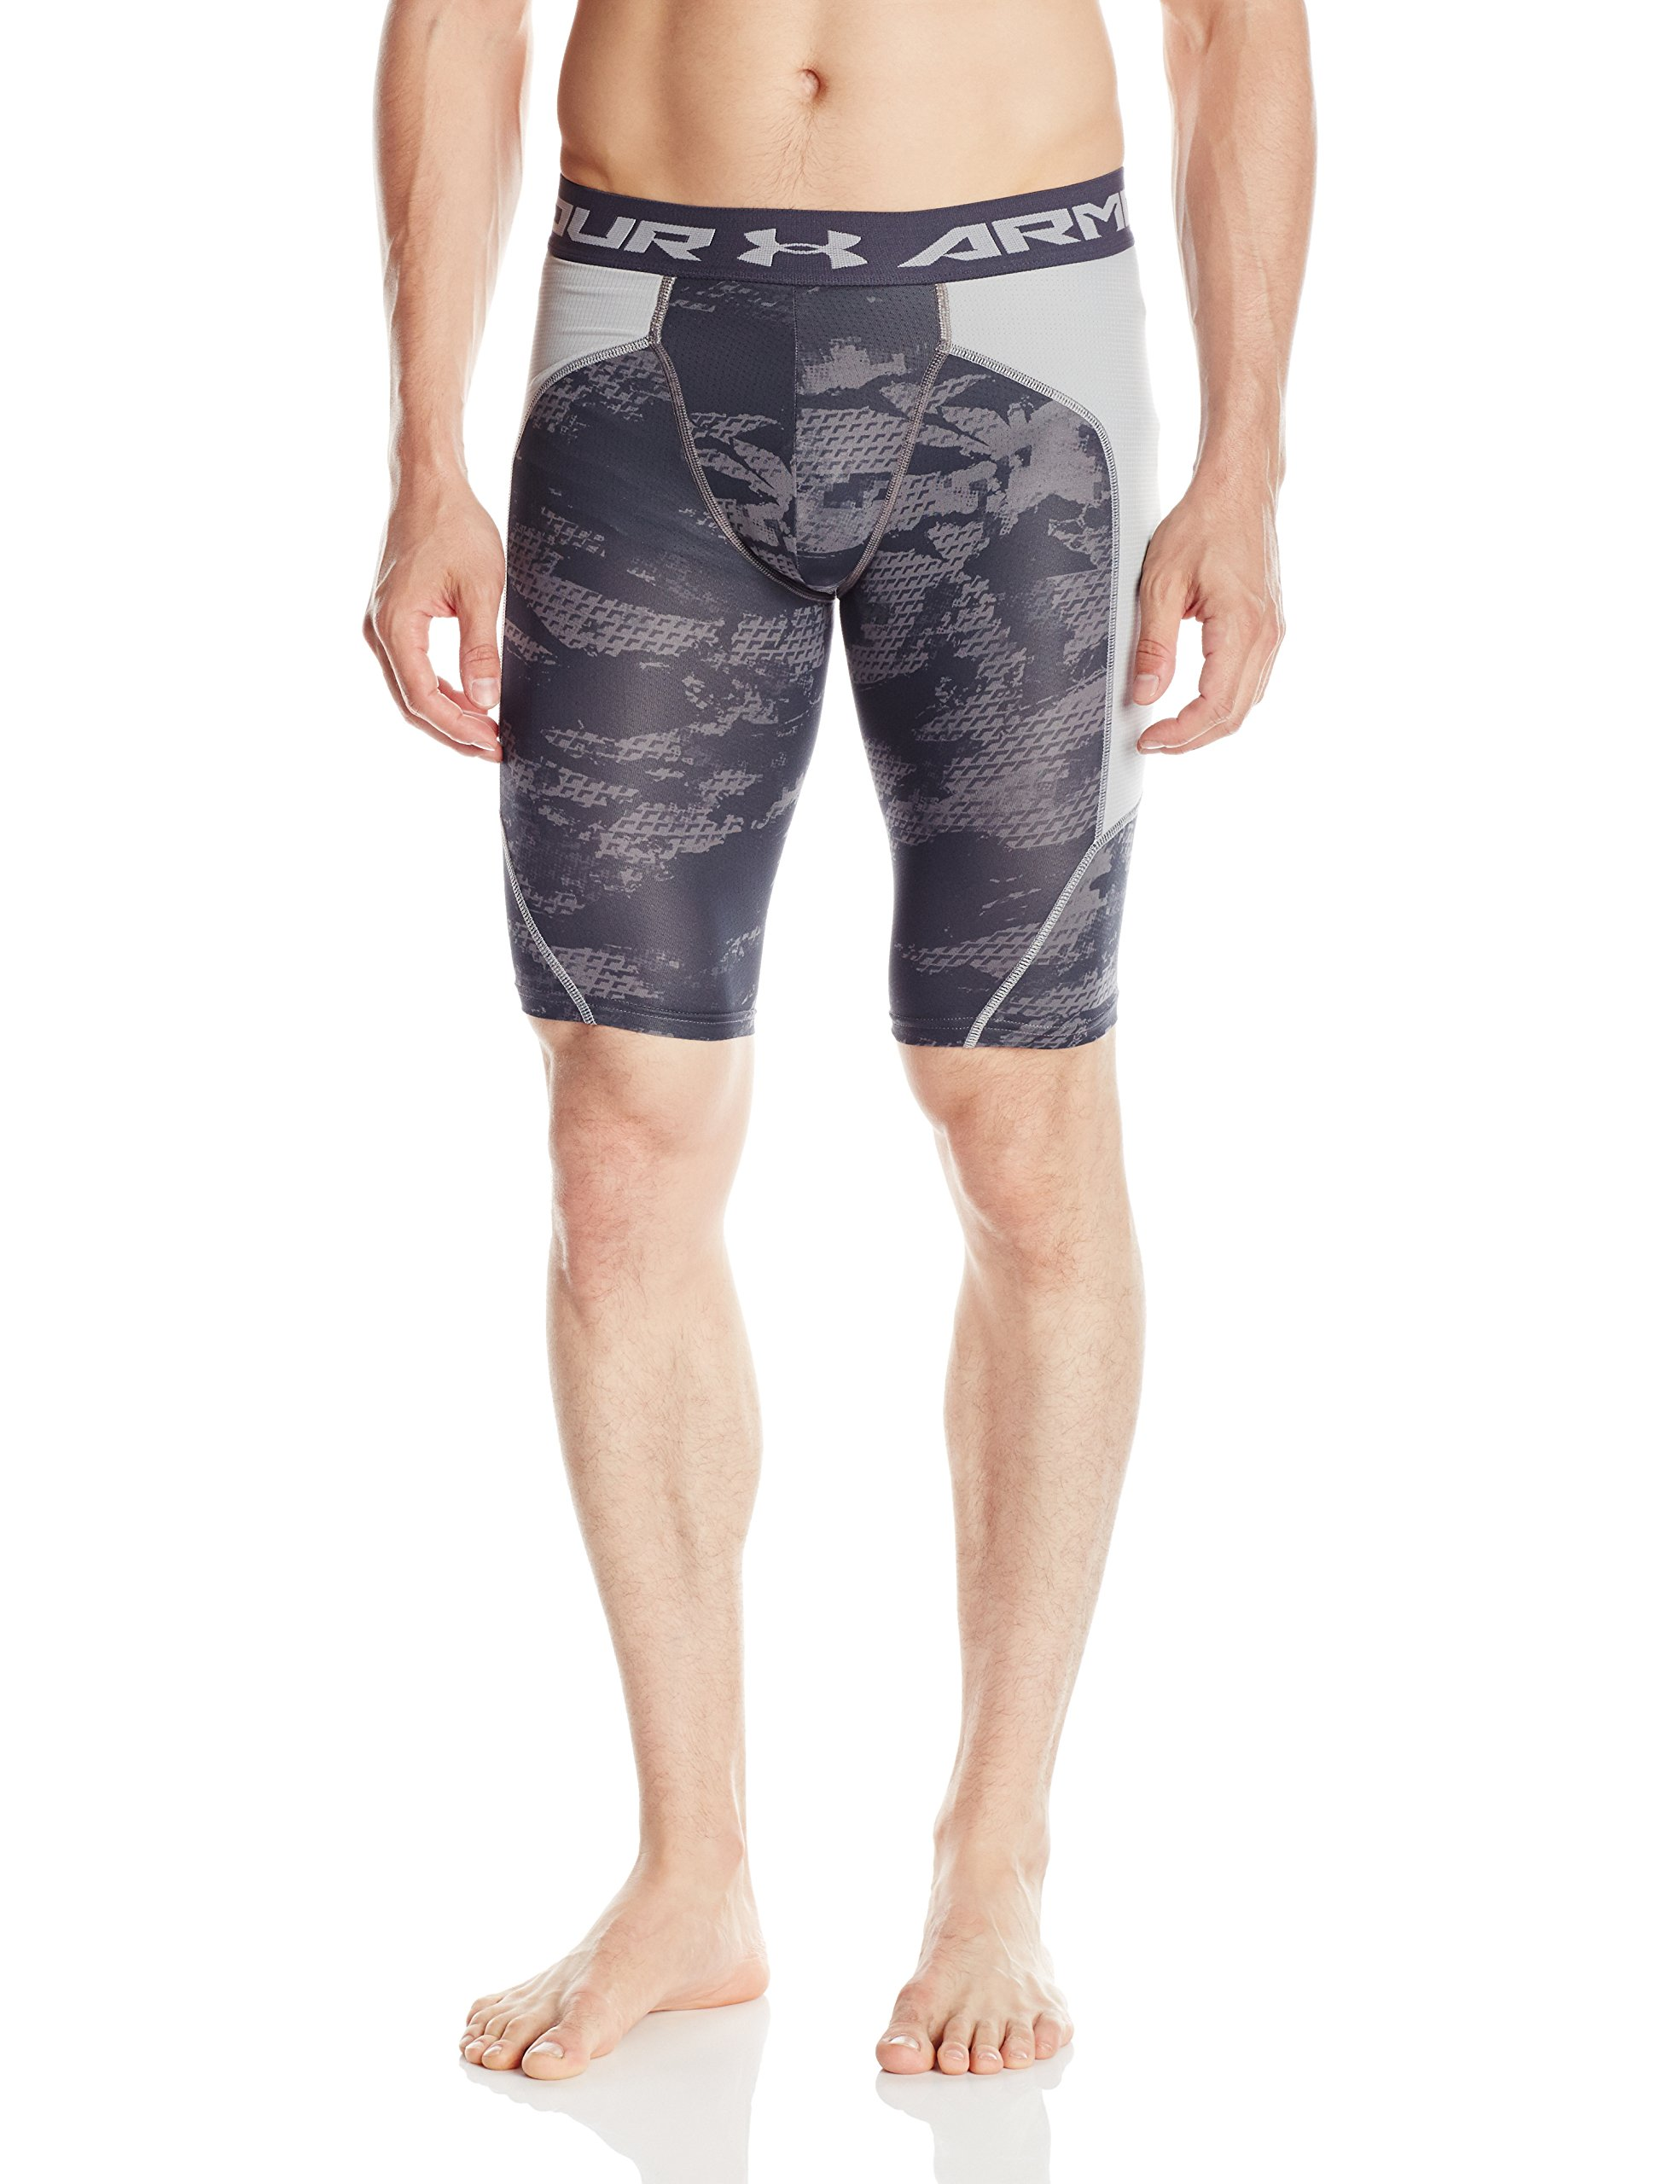 Under Armour Men's Undeniable Printed Baseball Slider, Graphite/Baseball Gray, Large by Under Armour